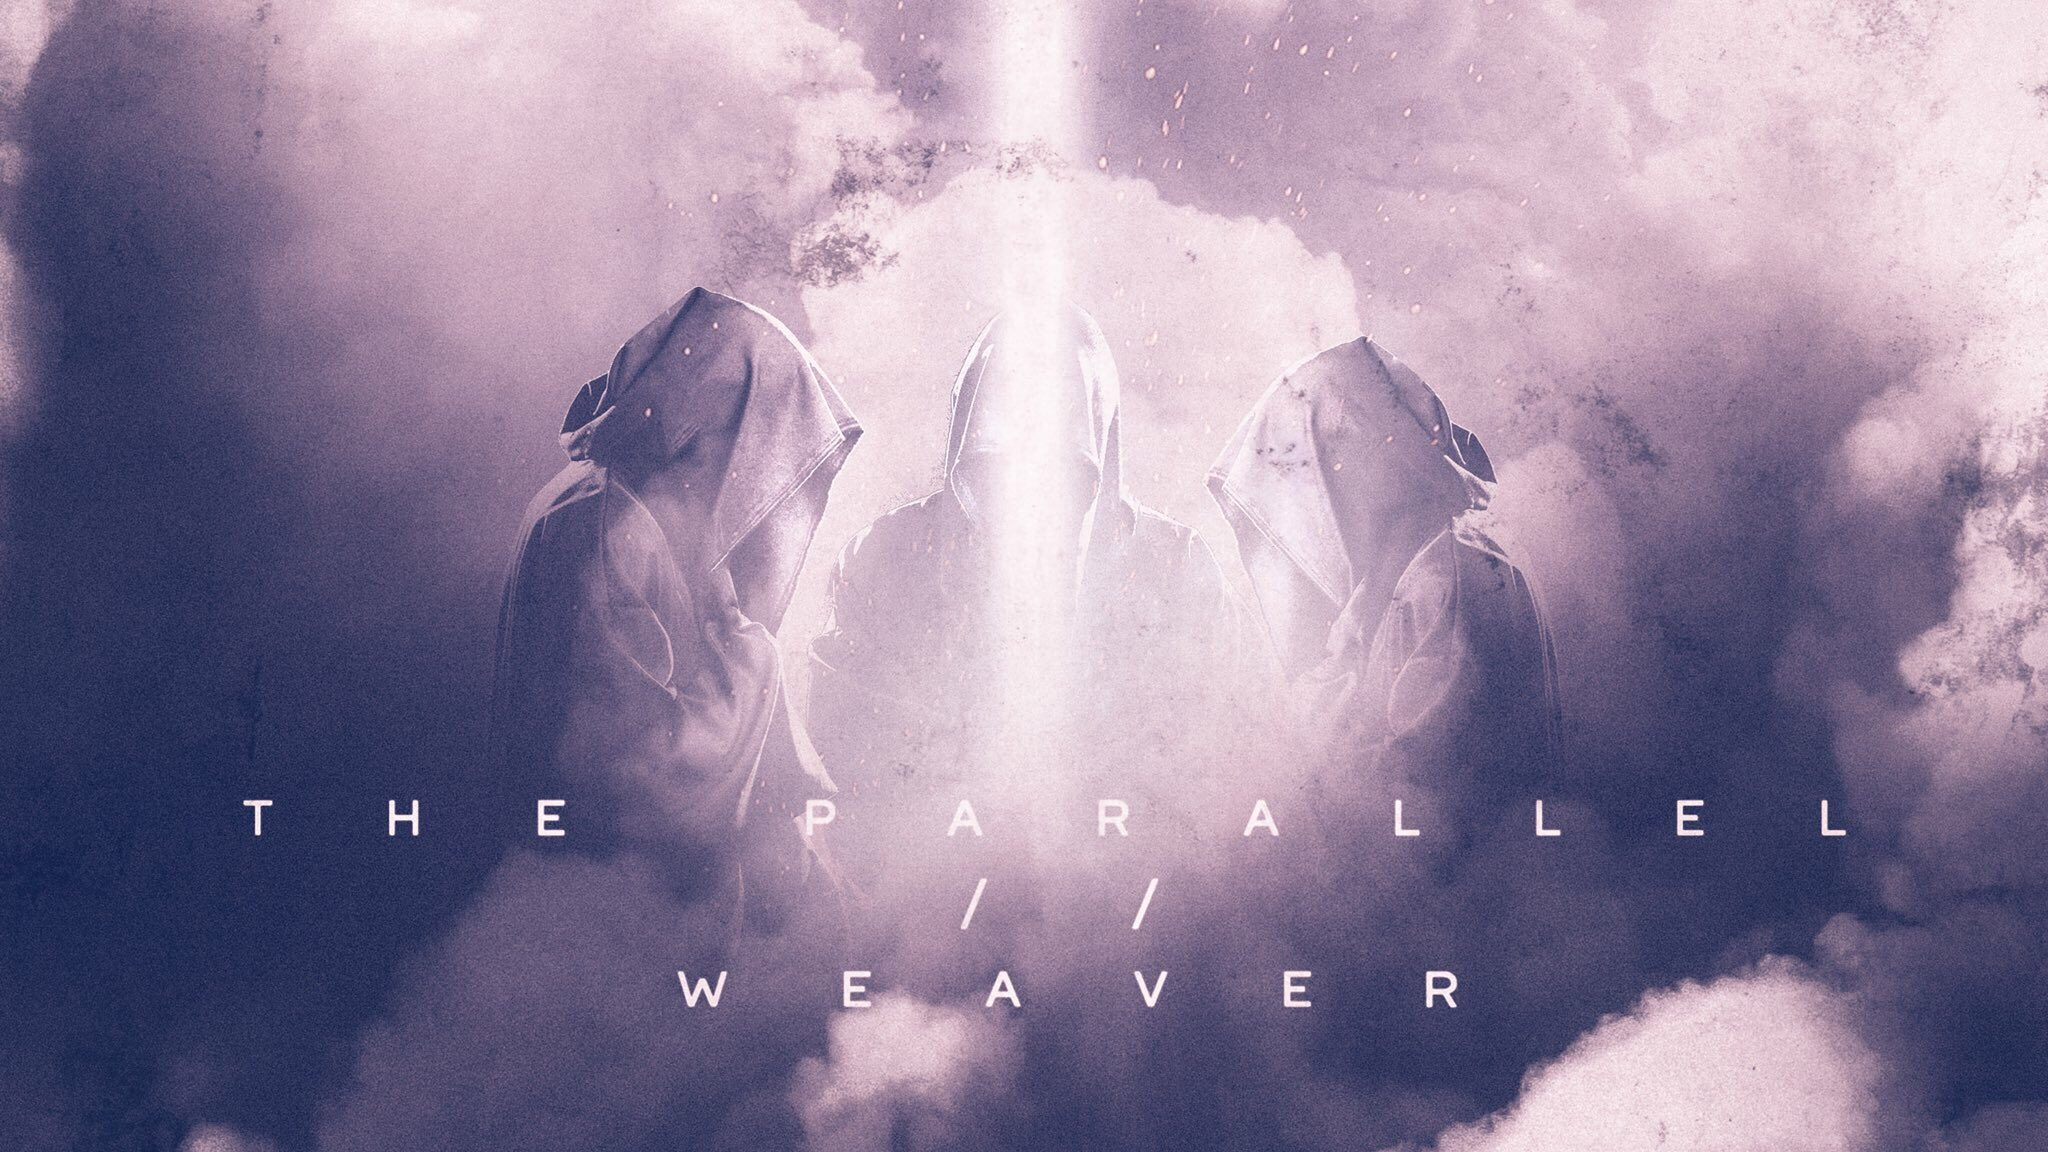 The Parallel Weaver review, The Parallel, The Parallel band, The Parallel progressive metalcore band, progressive metalcore bands, progressive metalcore albums, progressive metalcore albums 2018, metalcore albums 2018, metalcore albums December 2018, progressive metalcore albums December 2018, album metalcore dicembre 2018, album metalcore 2018, The Parallel Embark EP, The Parallel Weaver, The Parallel Weaver recensione, The Parallel Weaver album, The Parallel Weaver review, The Parallel Weaver tracklist, The Parallel Weaver rating, InVogue Records, Luke Snider, Brandon Kirwin, Brett Cox, Ron Totman, Decipher, Monochrome, Encrypt (Ion), Chimera, Time Tunnel, Gloom, Wanderlust, Thread (feat. Kyle Anderson), Ego Death, Moirai, Wax Wings, Oracle, sickandsound, album reviews, NowPlaying, TheParallelWeaver, progressive metalcore, metalcore, TheParallelCA, progressive metalcore album review, Listen to The Parallel Weaver, Stream The Parallel Weaver, Ascolta The Parallel Weaver